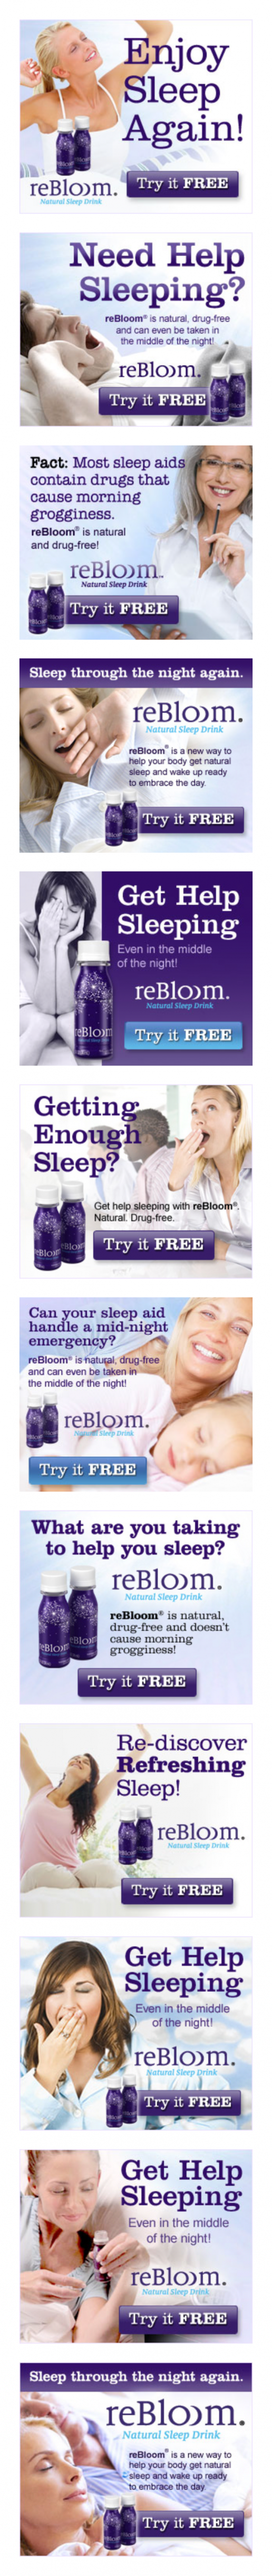 rebloom-banner-ads-300×250-12-examples